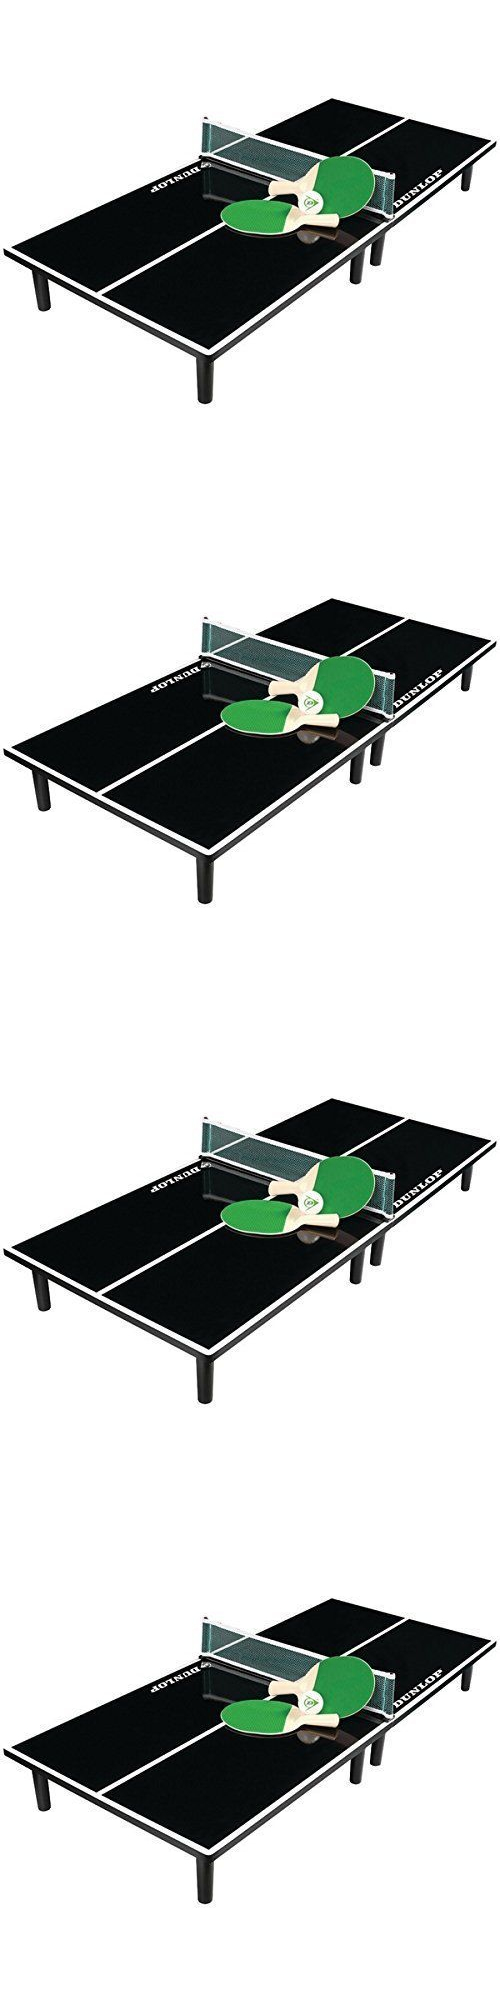 Sets 158955: Table Tennis Ping Pong Conversion Top Portable Table Top +Paddles+